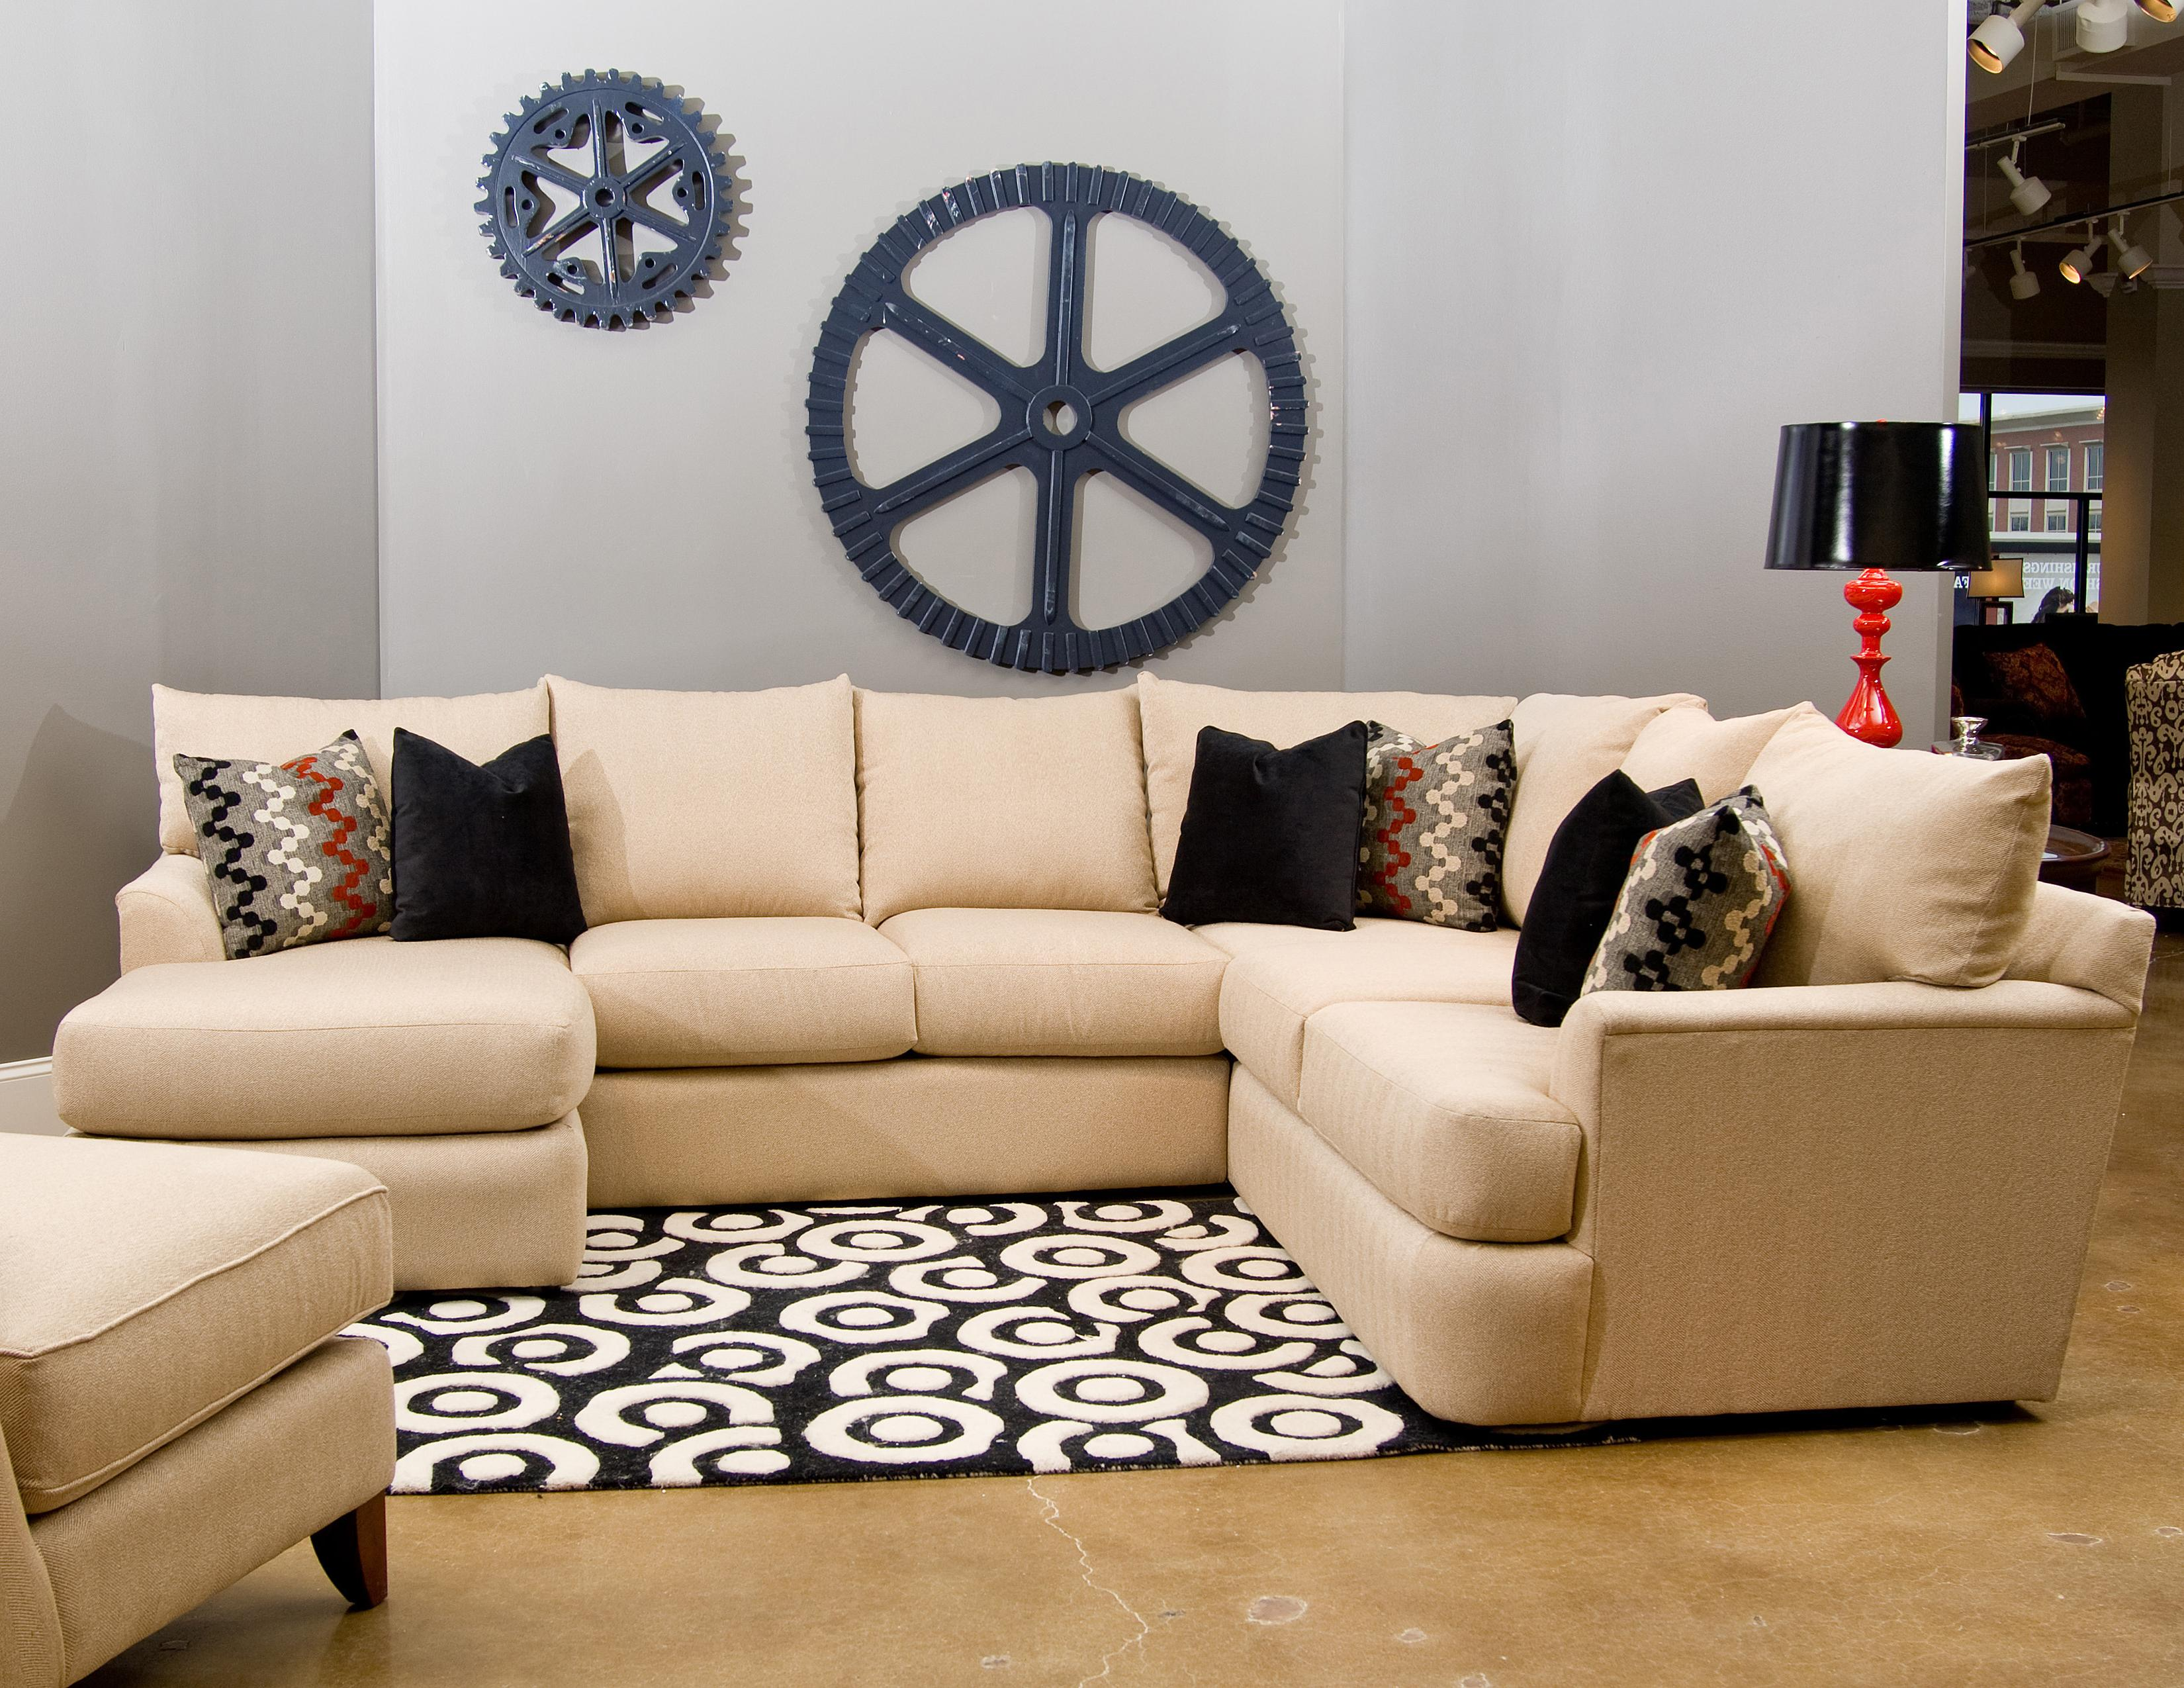 3 sided sectional sofa baxton studio callidora brown leather with left facing chaise side lounger by klaussner